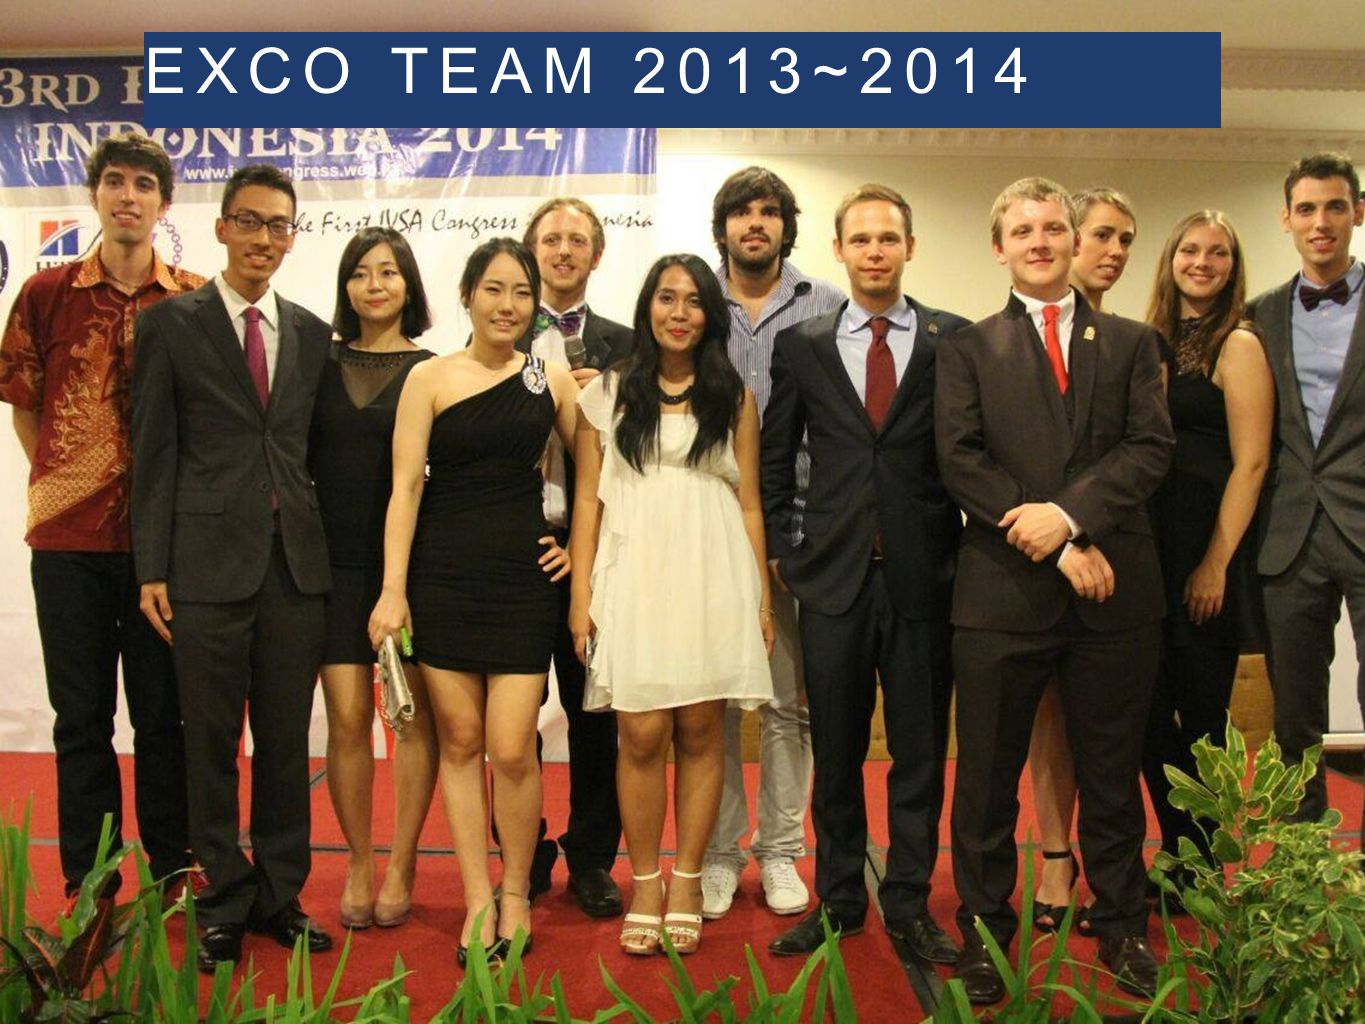 Exco team 2013~2014